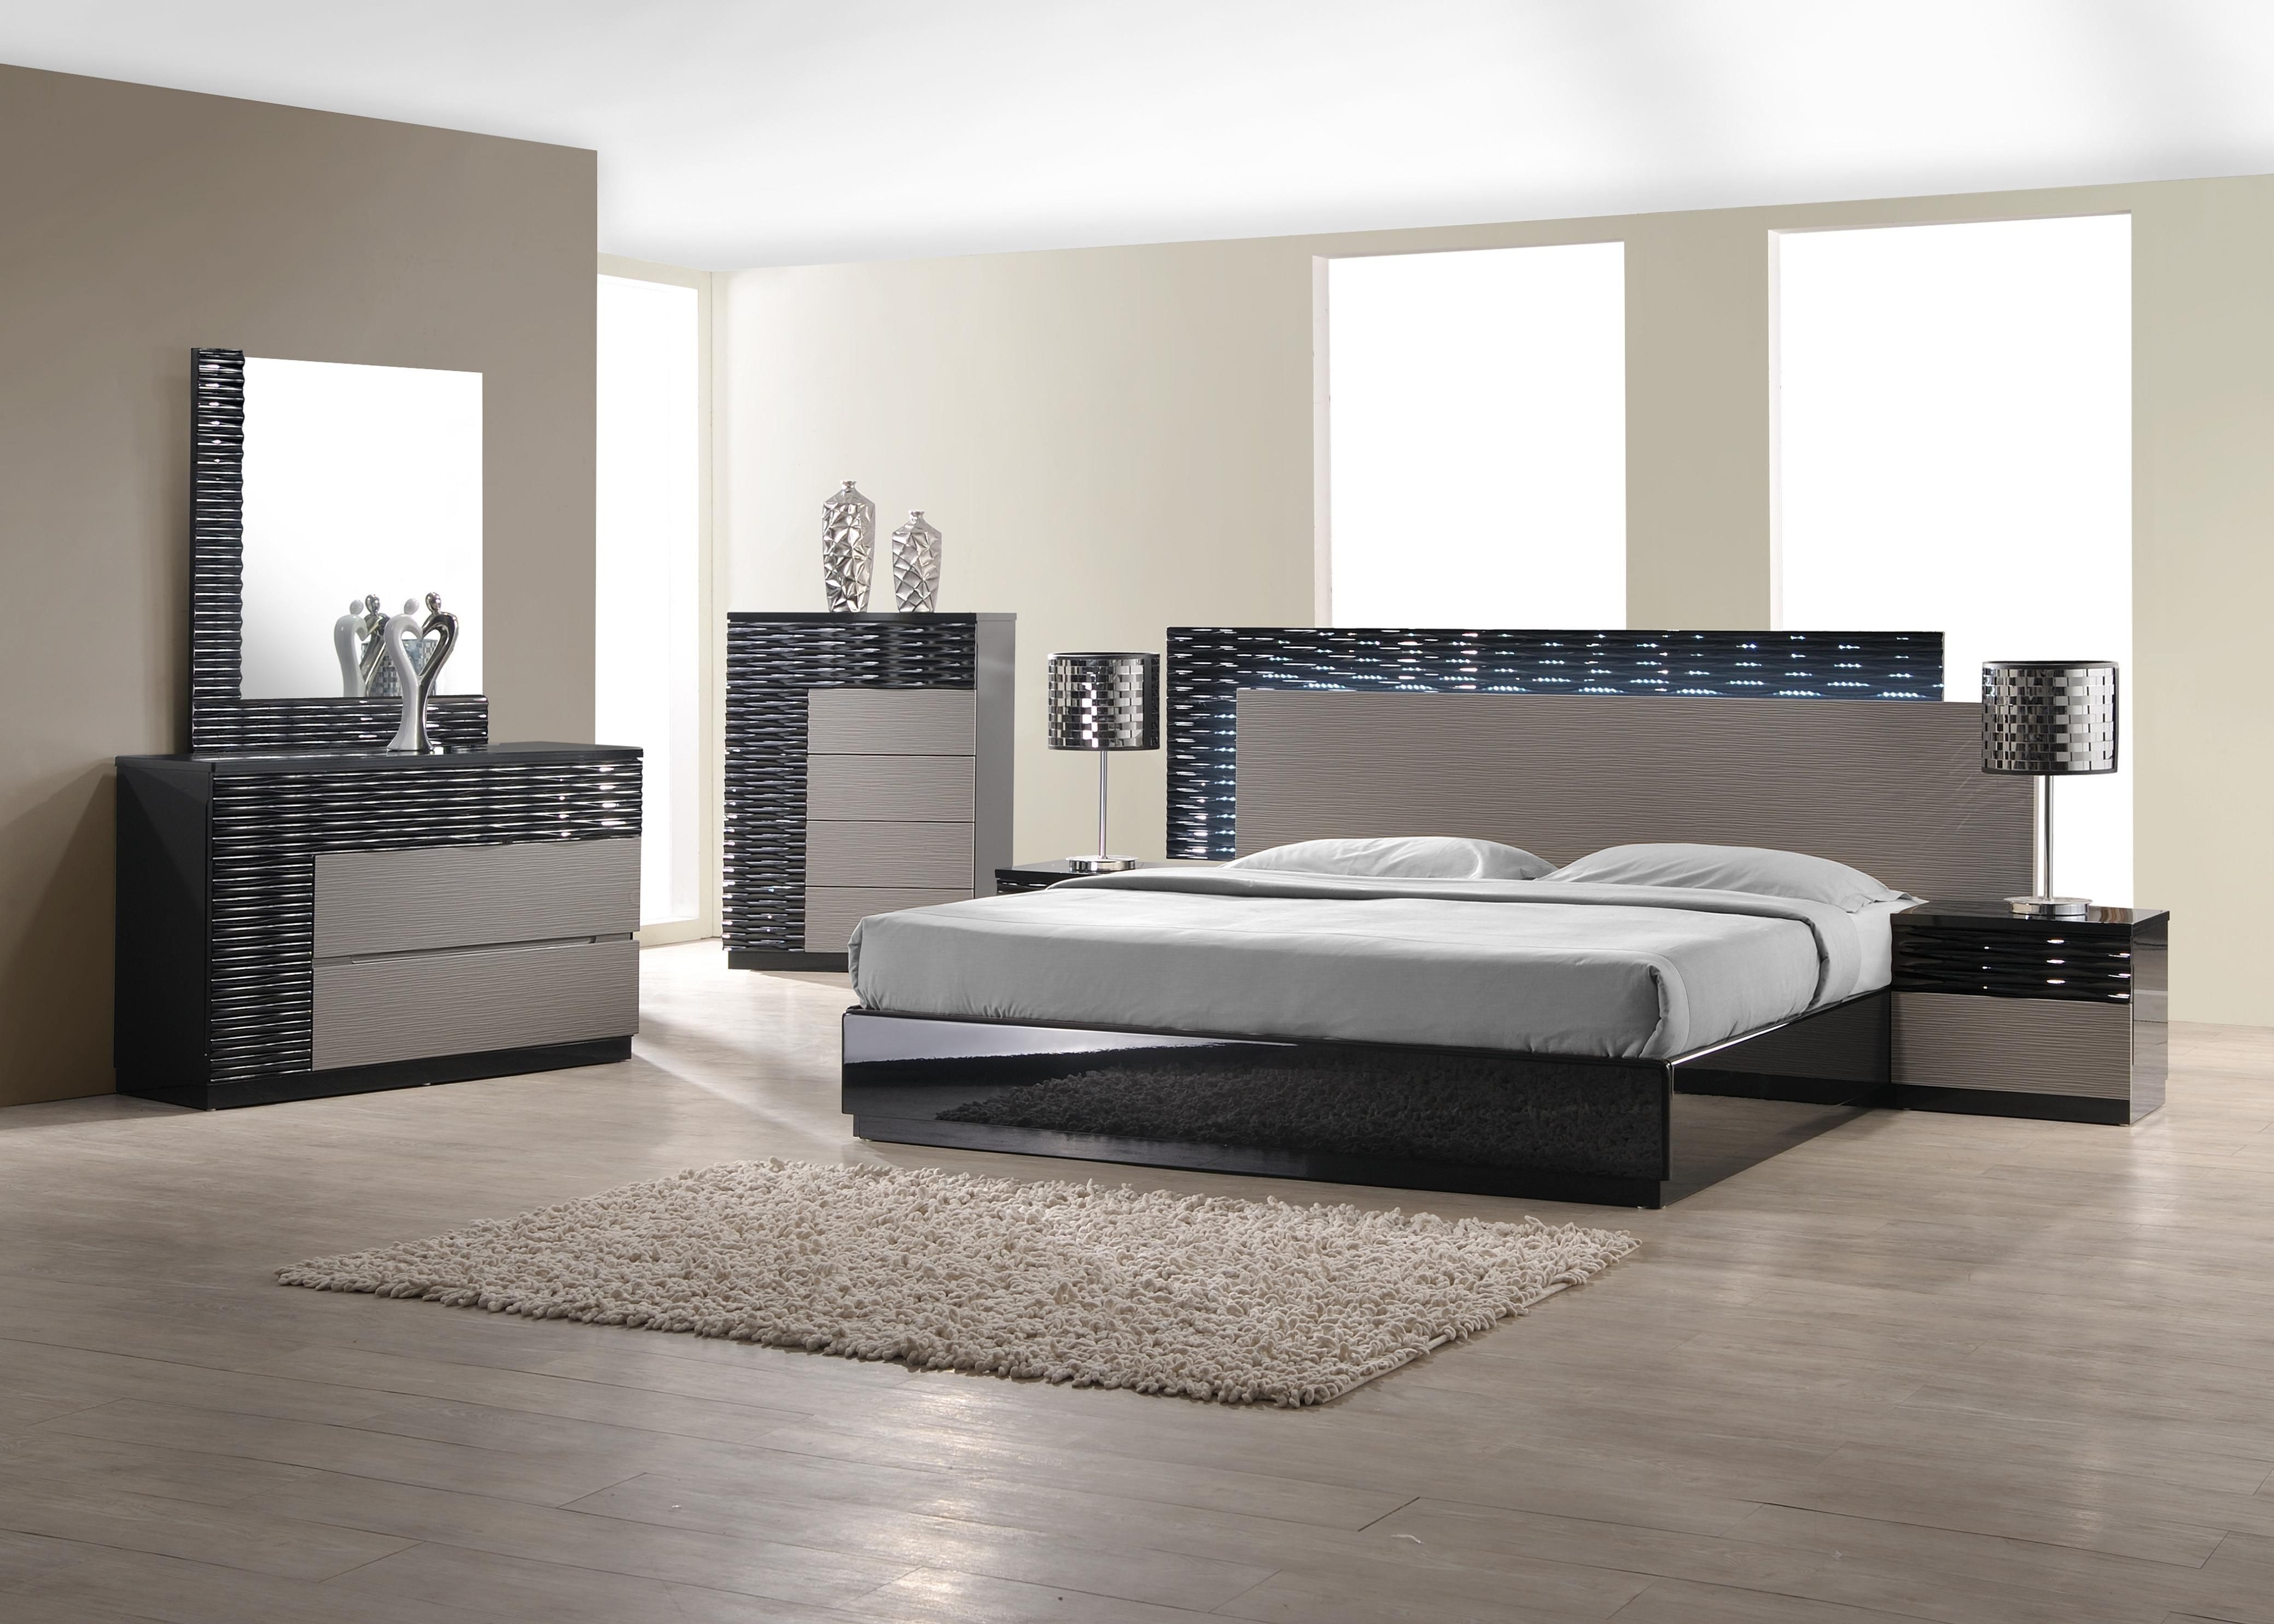 16 unique modern bedroom design ideas for your on unique contemporary bedroom design ideas for more inspiration id=79059